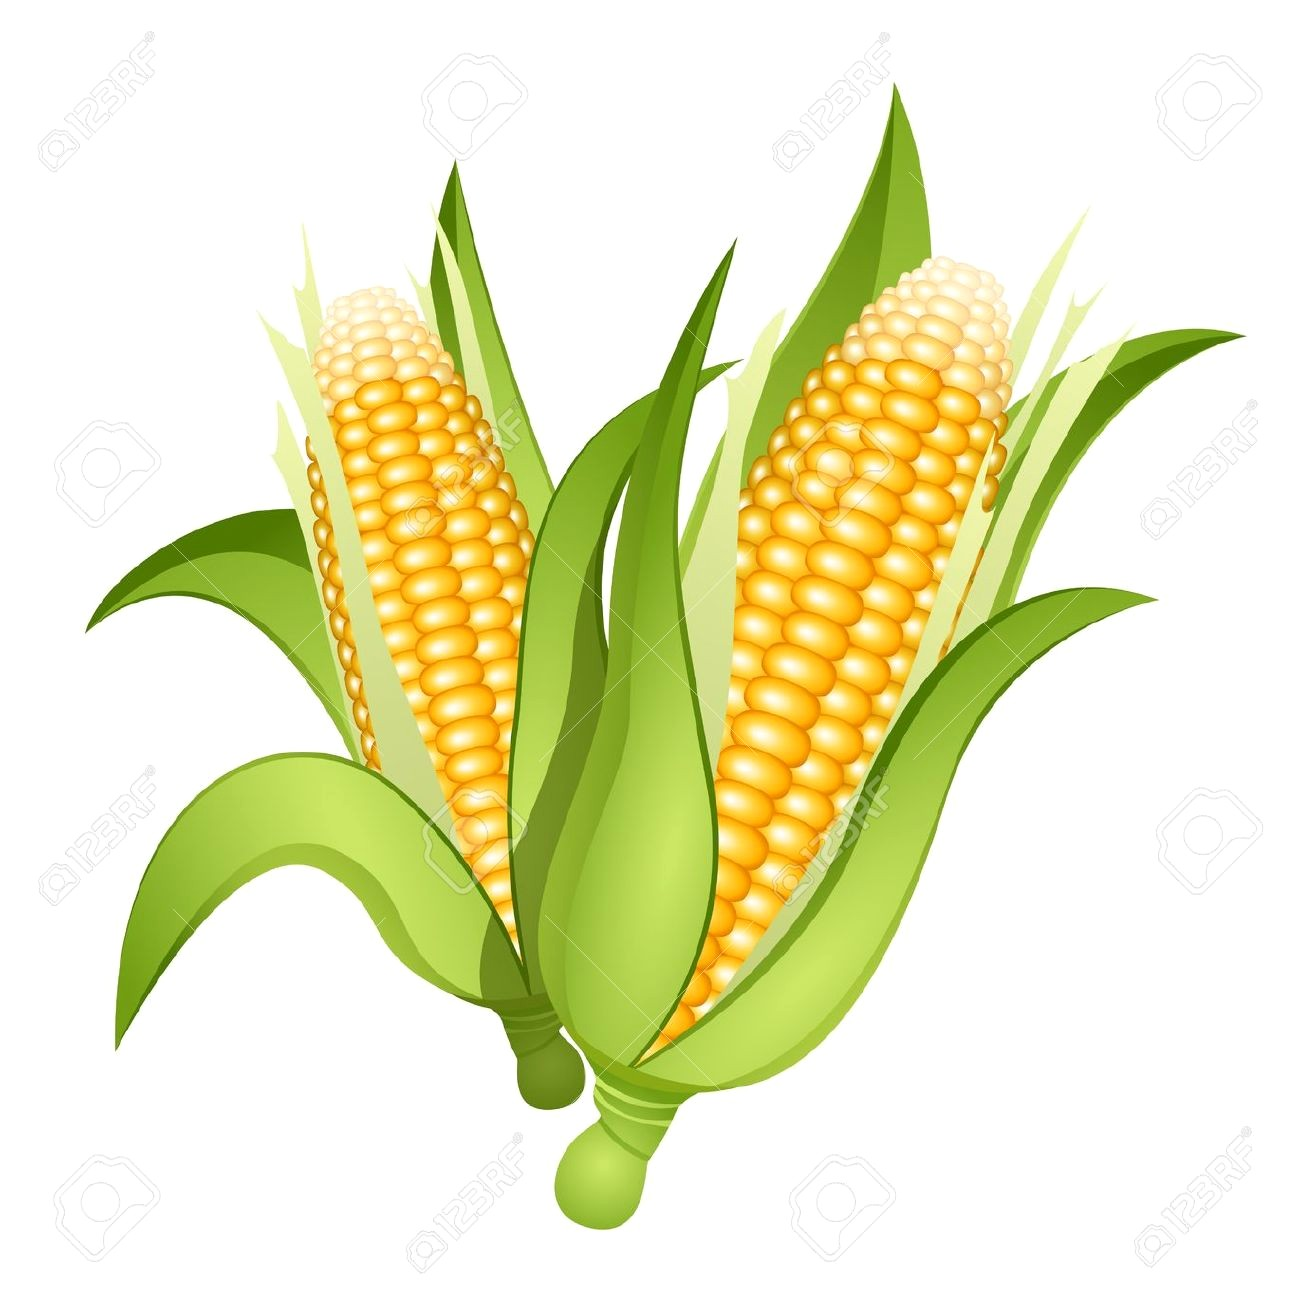 1300x1300 Stock Photo Corn Illustration Ear Of Drawing Isolated On The Cob